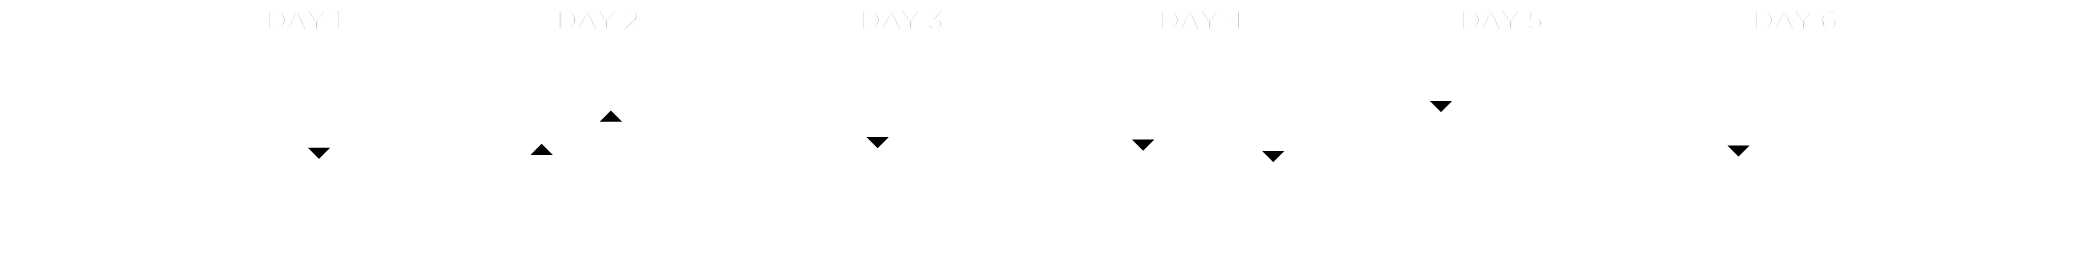 Cradle-Lake-St-Clair-Self-Guided-Walking-Grading